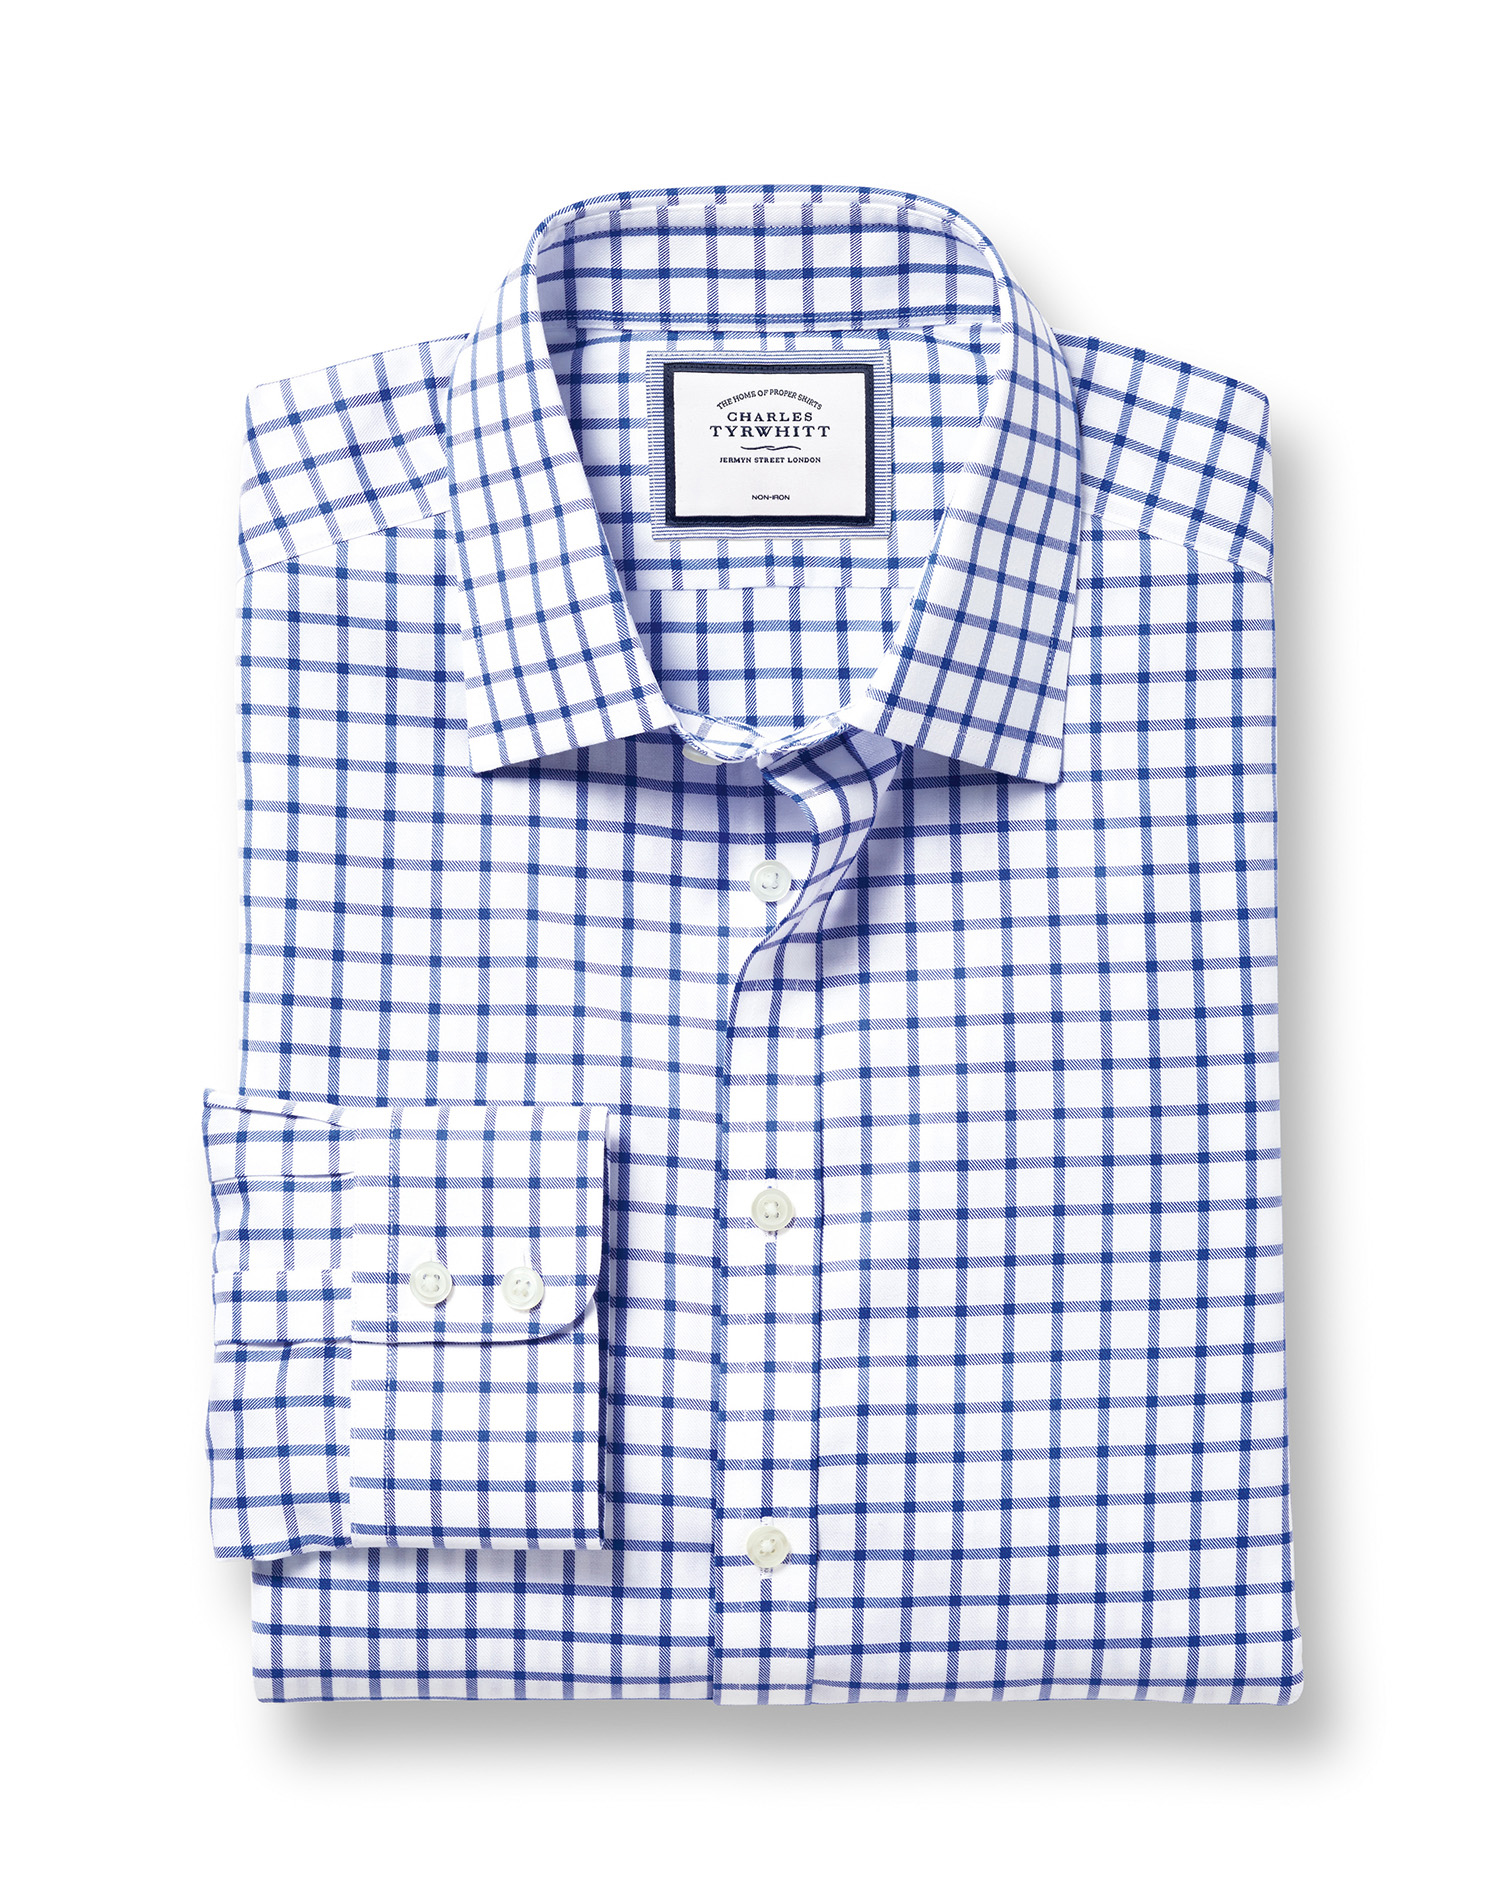 Classic Fit Non-Iron Twill Grid Check Royal Blue Cotton Formal Shirt Double Cuff Size 15.5/37 by Cha